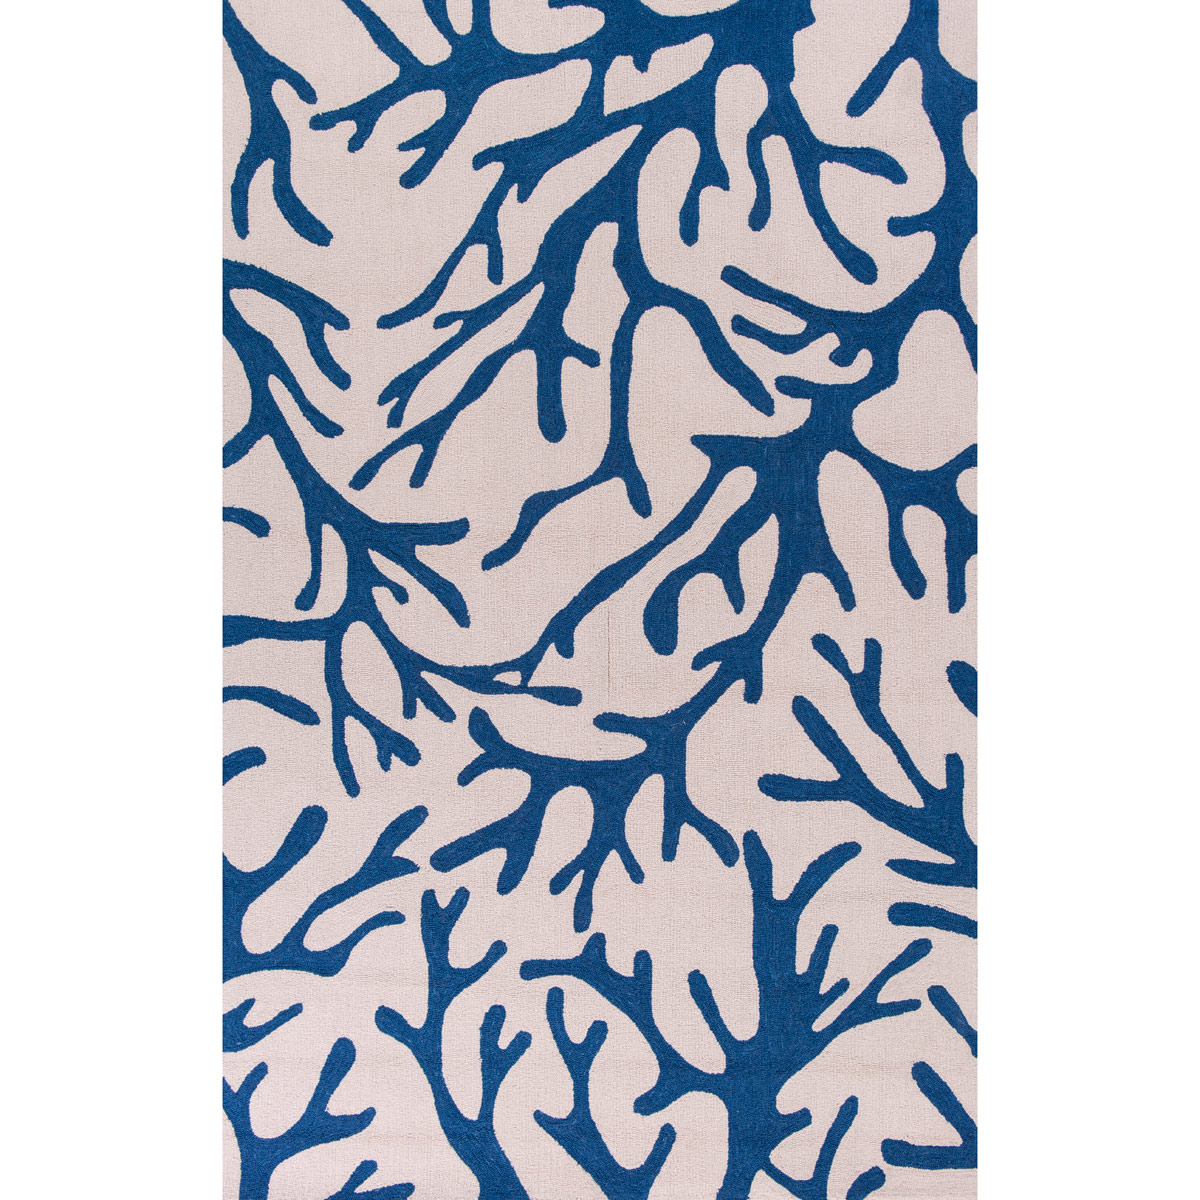 Sonesta Ivory and Blue Coral Rug - 5 x 8